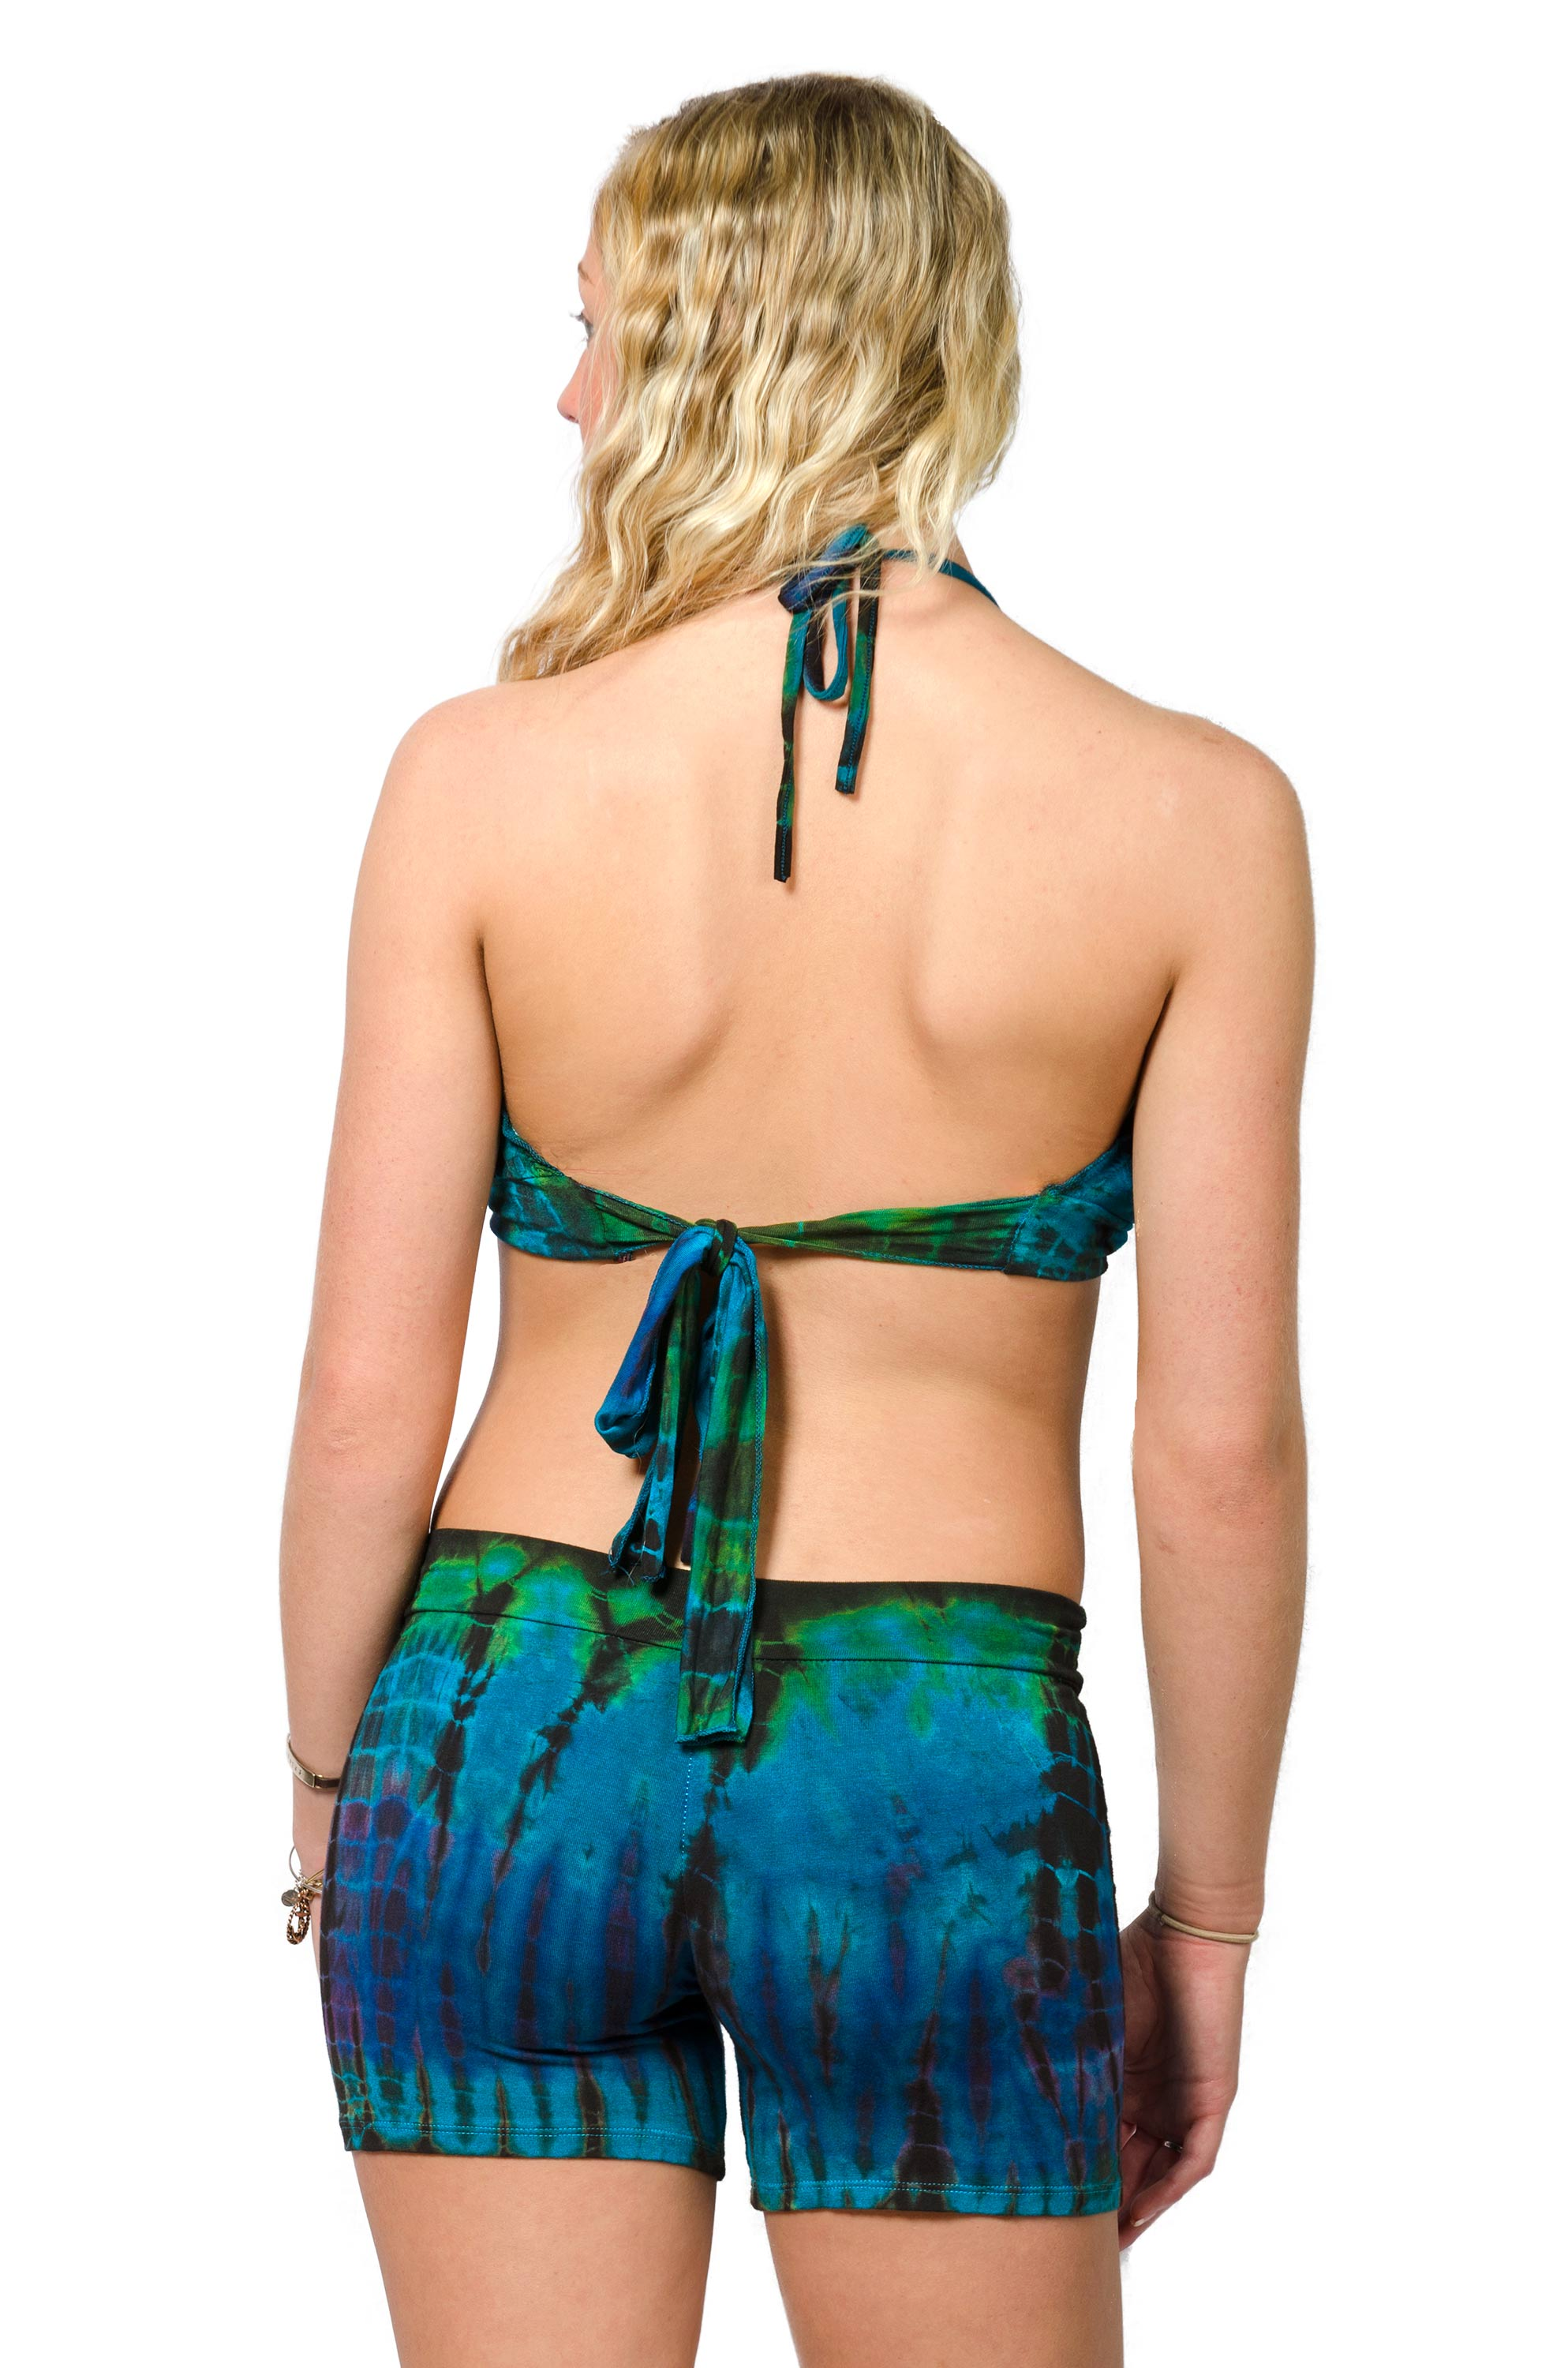 Shorts & Halter - Blue Green Multi